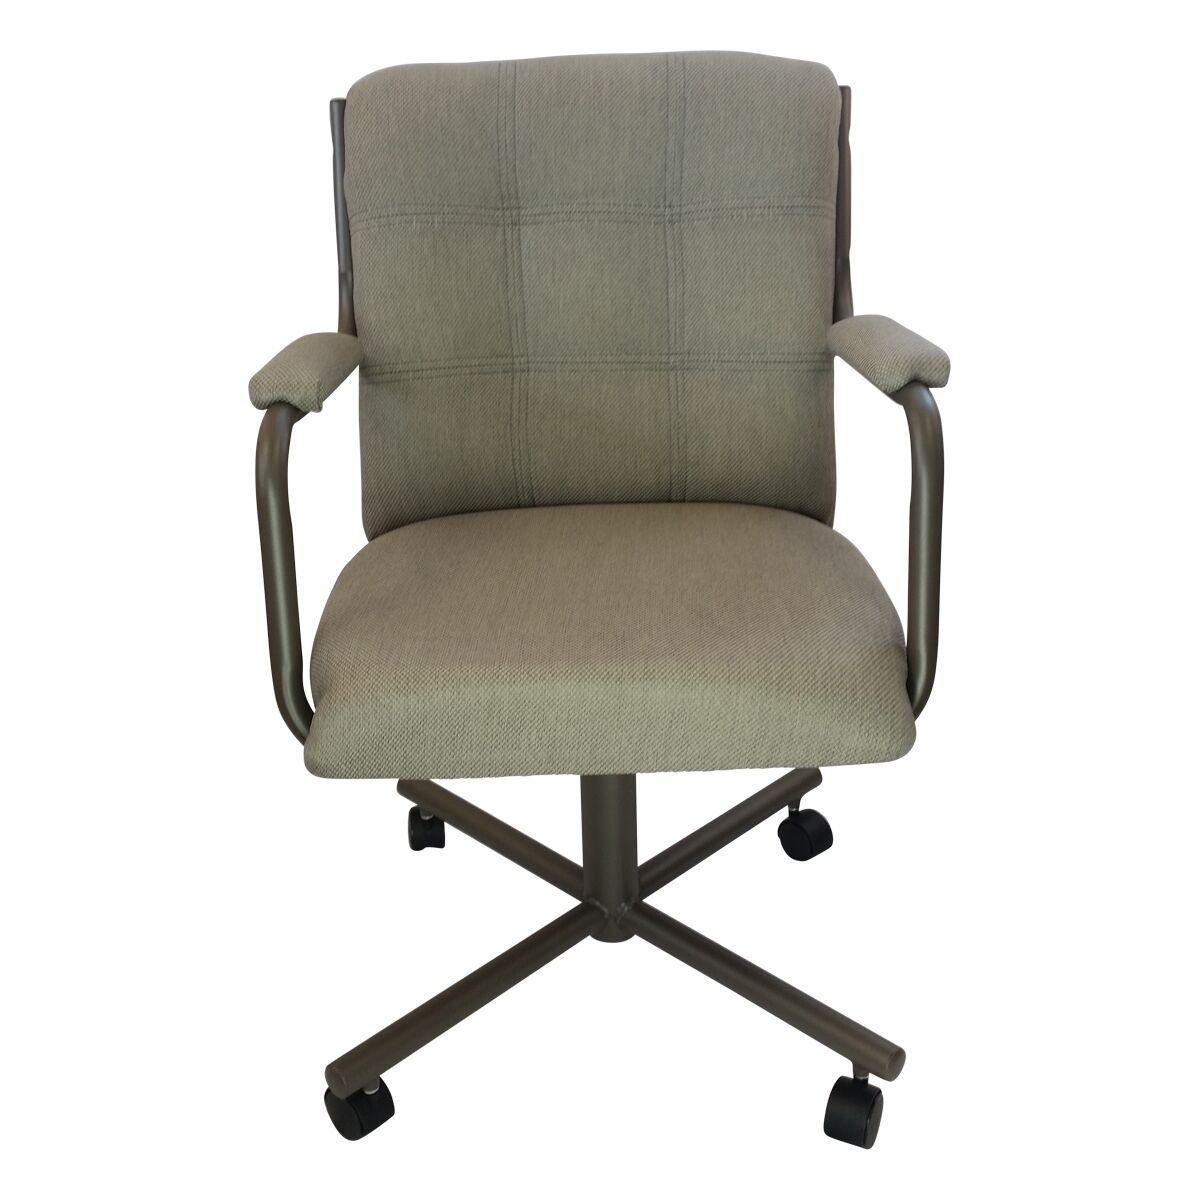 Cecere Upholstered Dining Chair